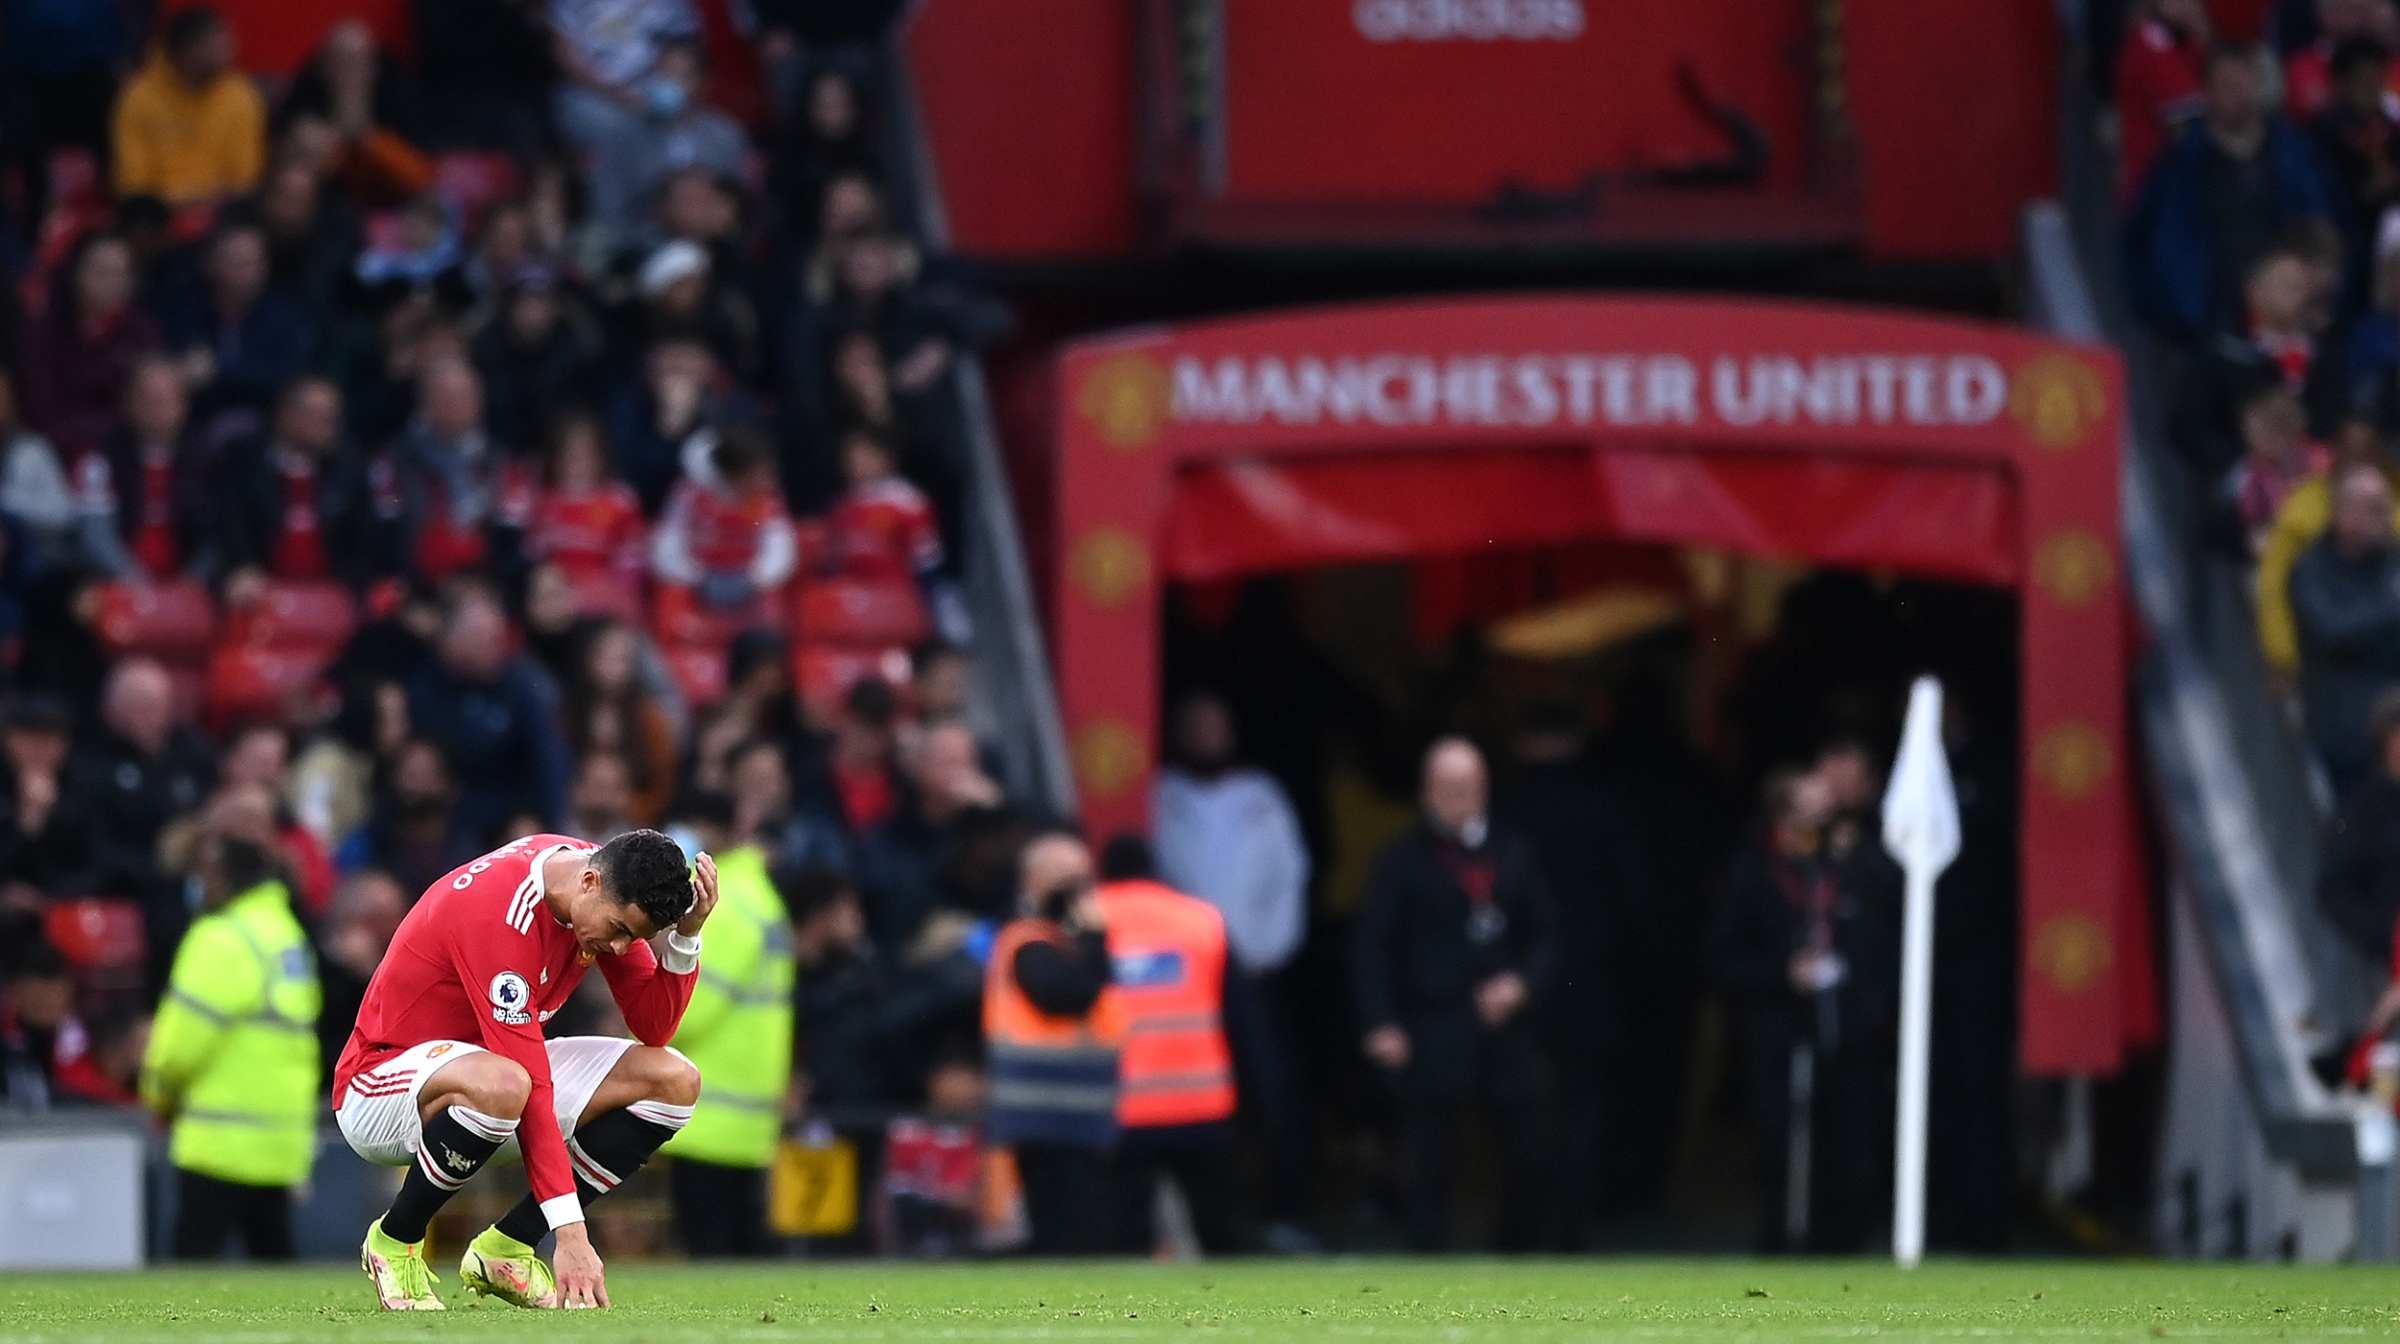 Cristiano Ronaldo of Manchester United looks dejected during the Premier League match between Manchester United and Liverpool at Old Trafford on October 24, 2021 in Manchester, England.